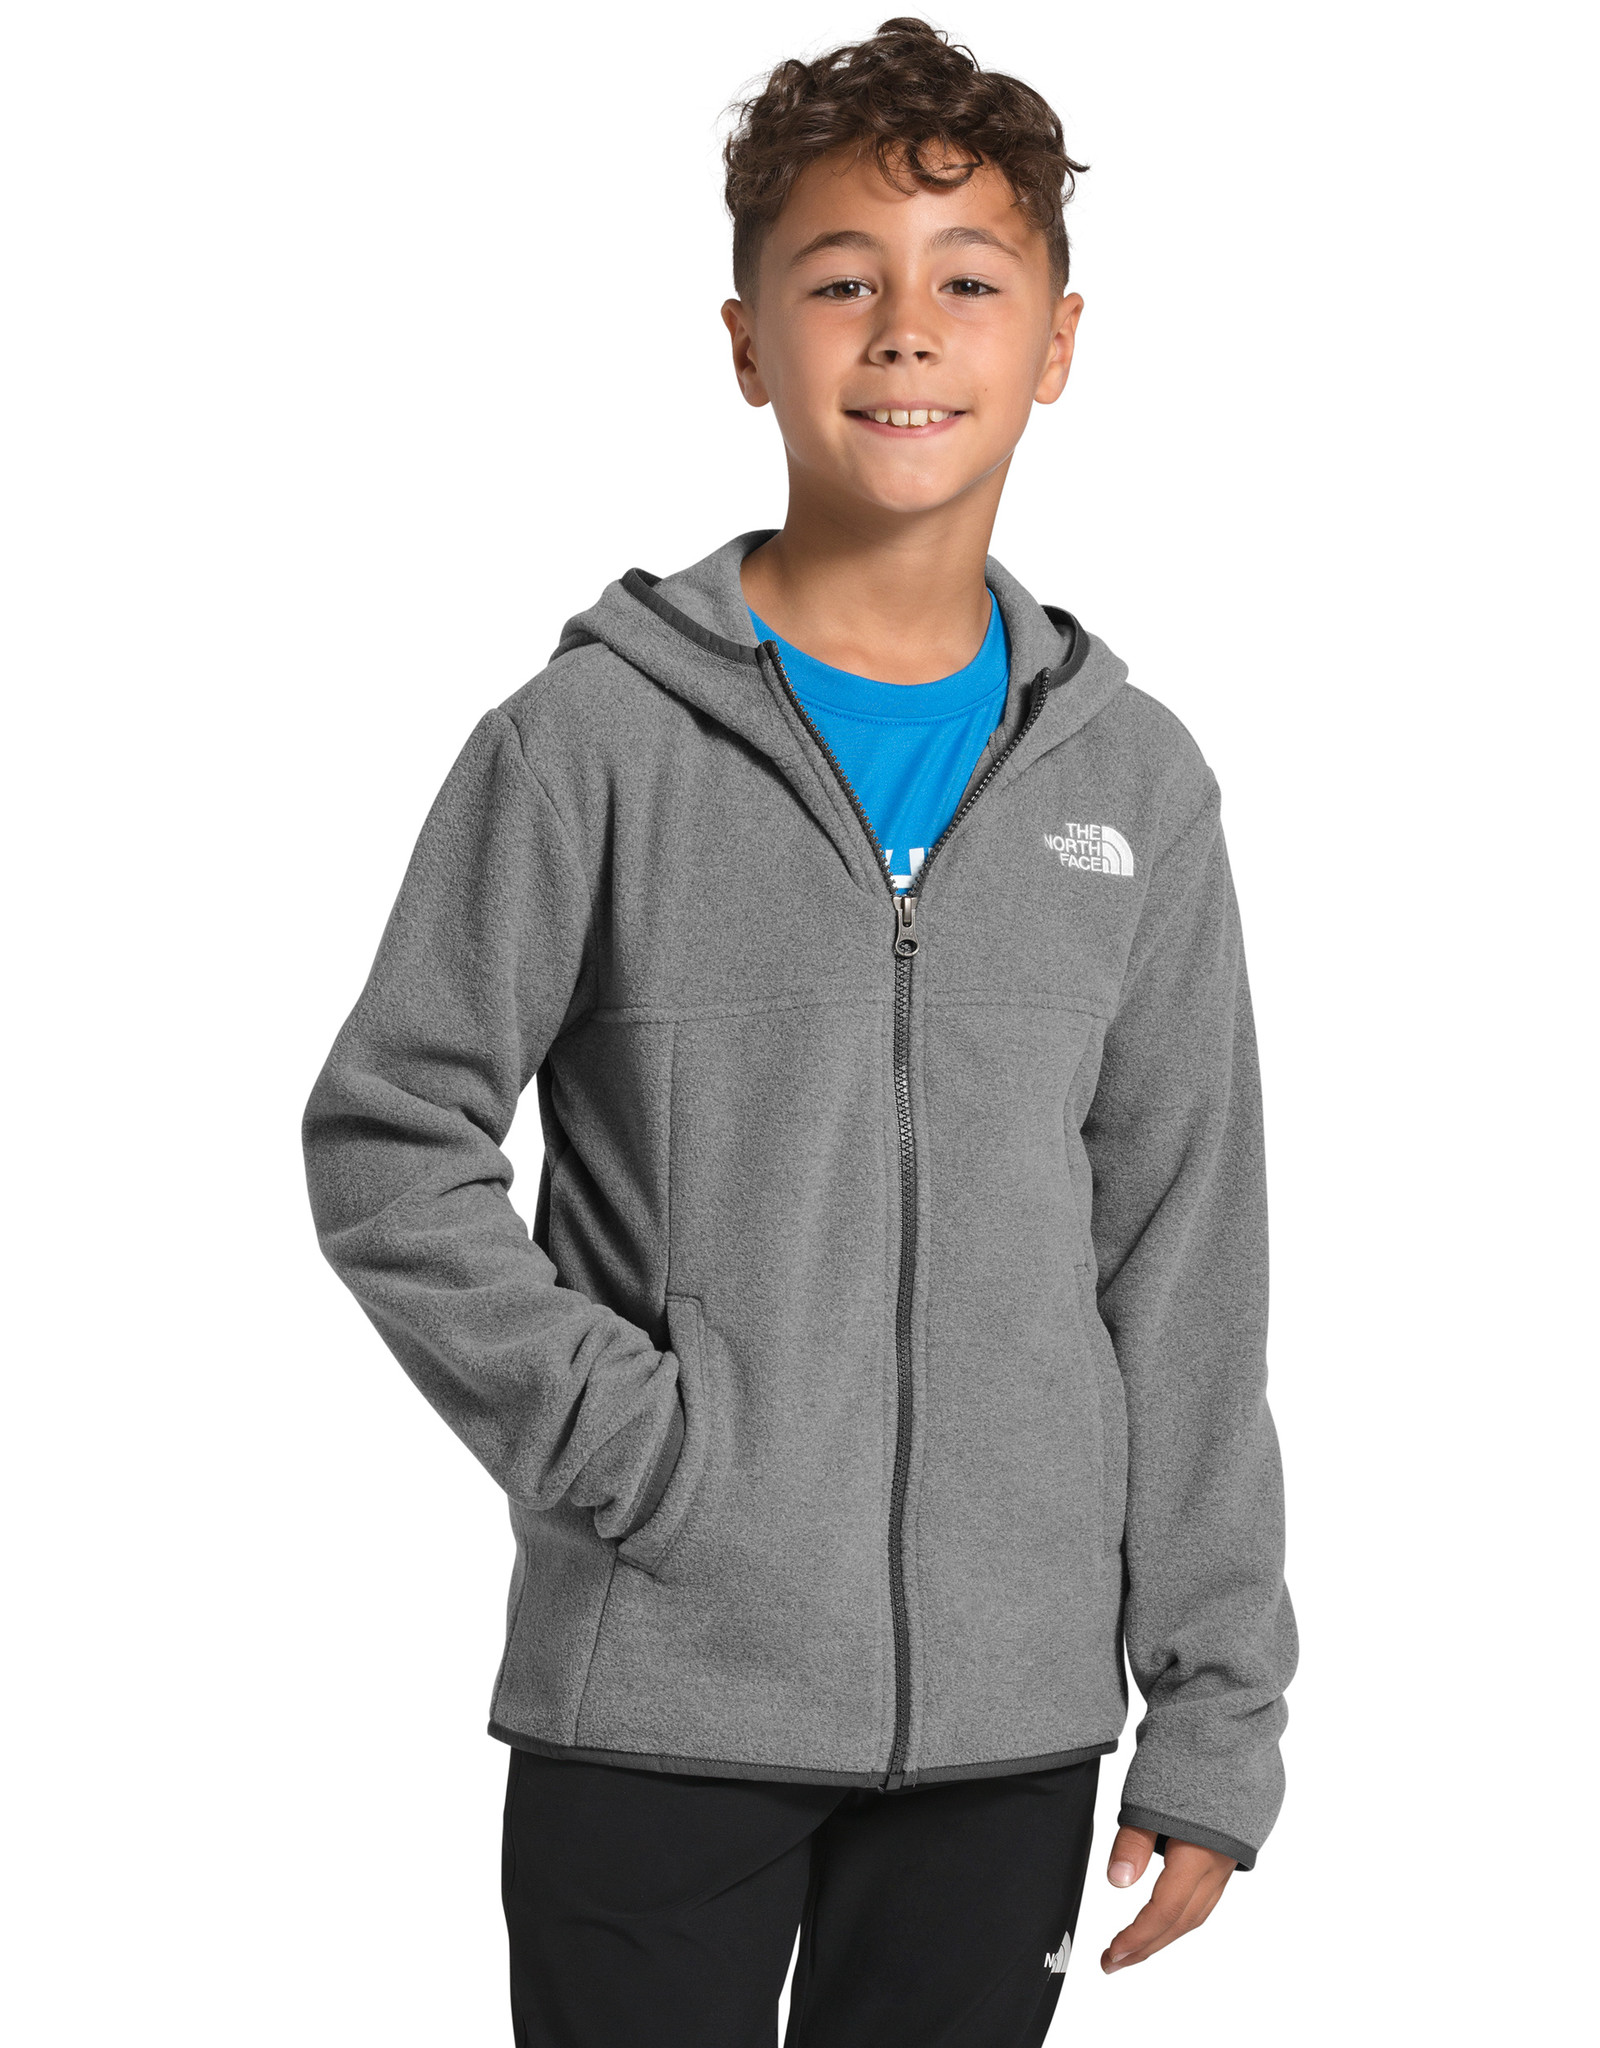 The North Face The North Face Boy's Glacier Full Zip Hoodie - S2020